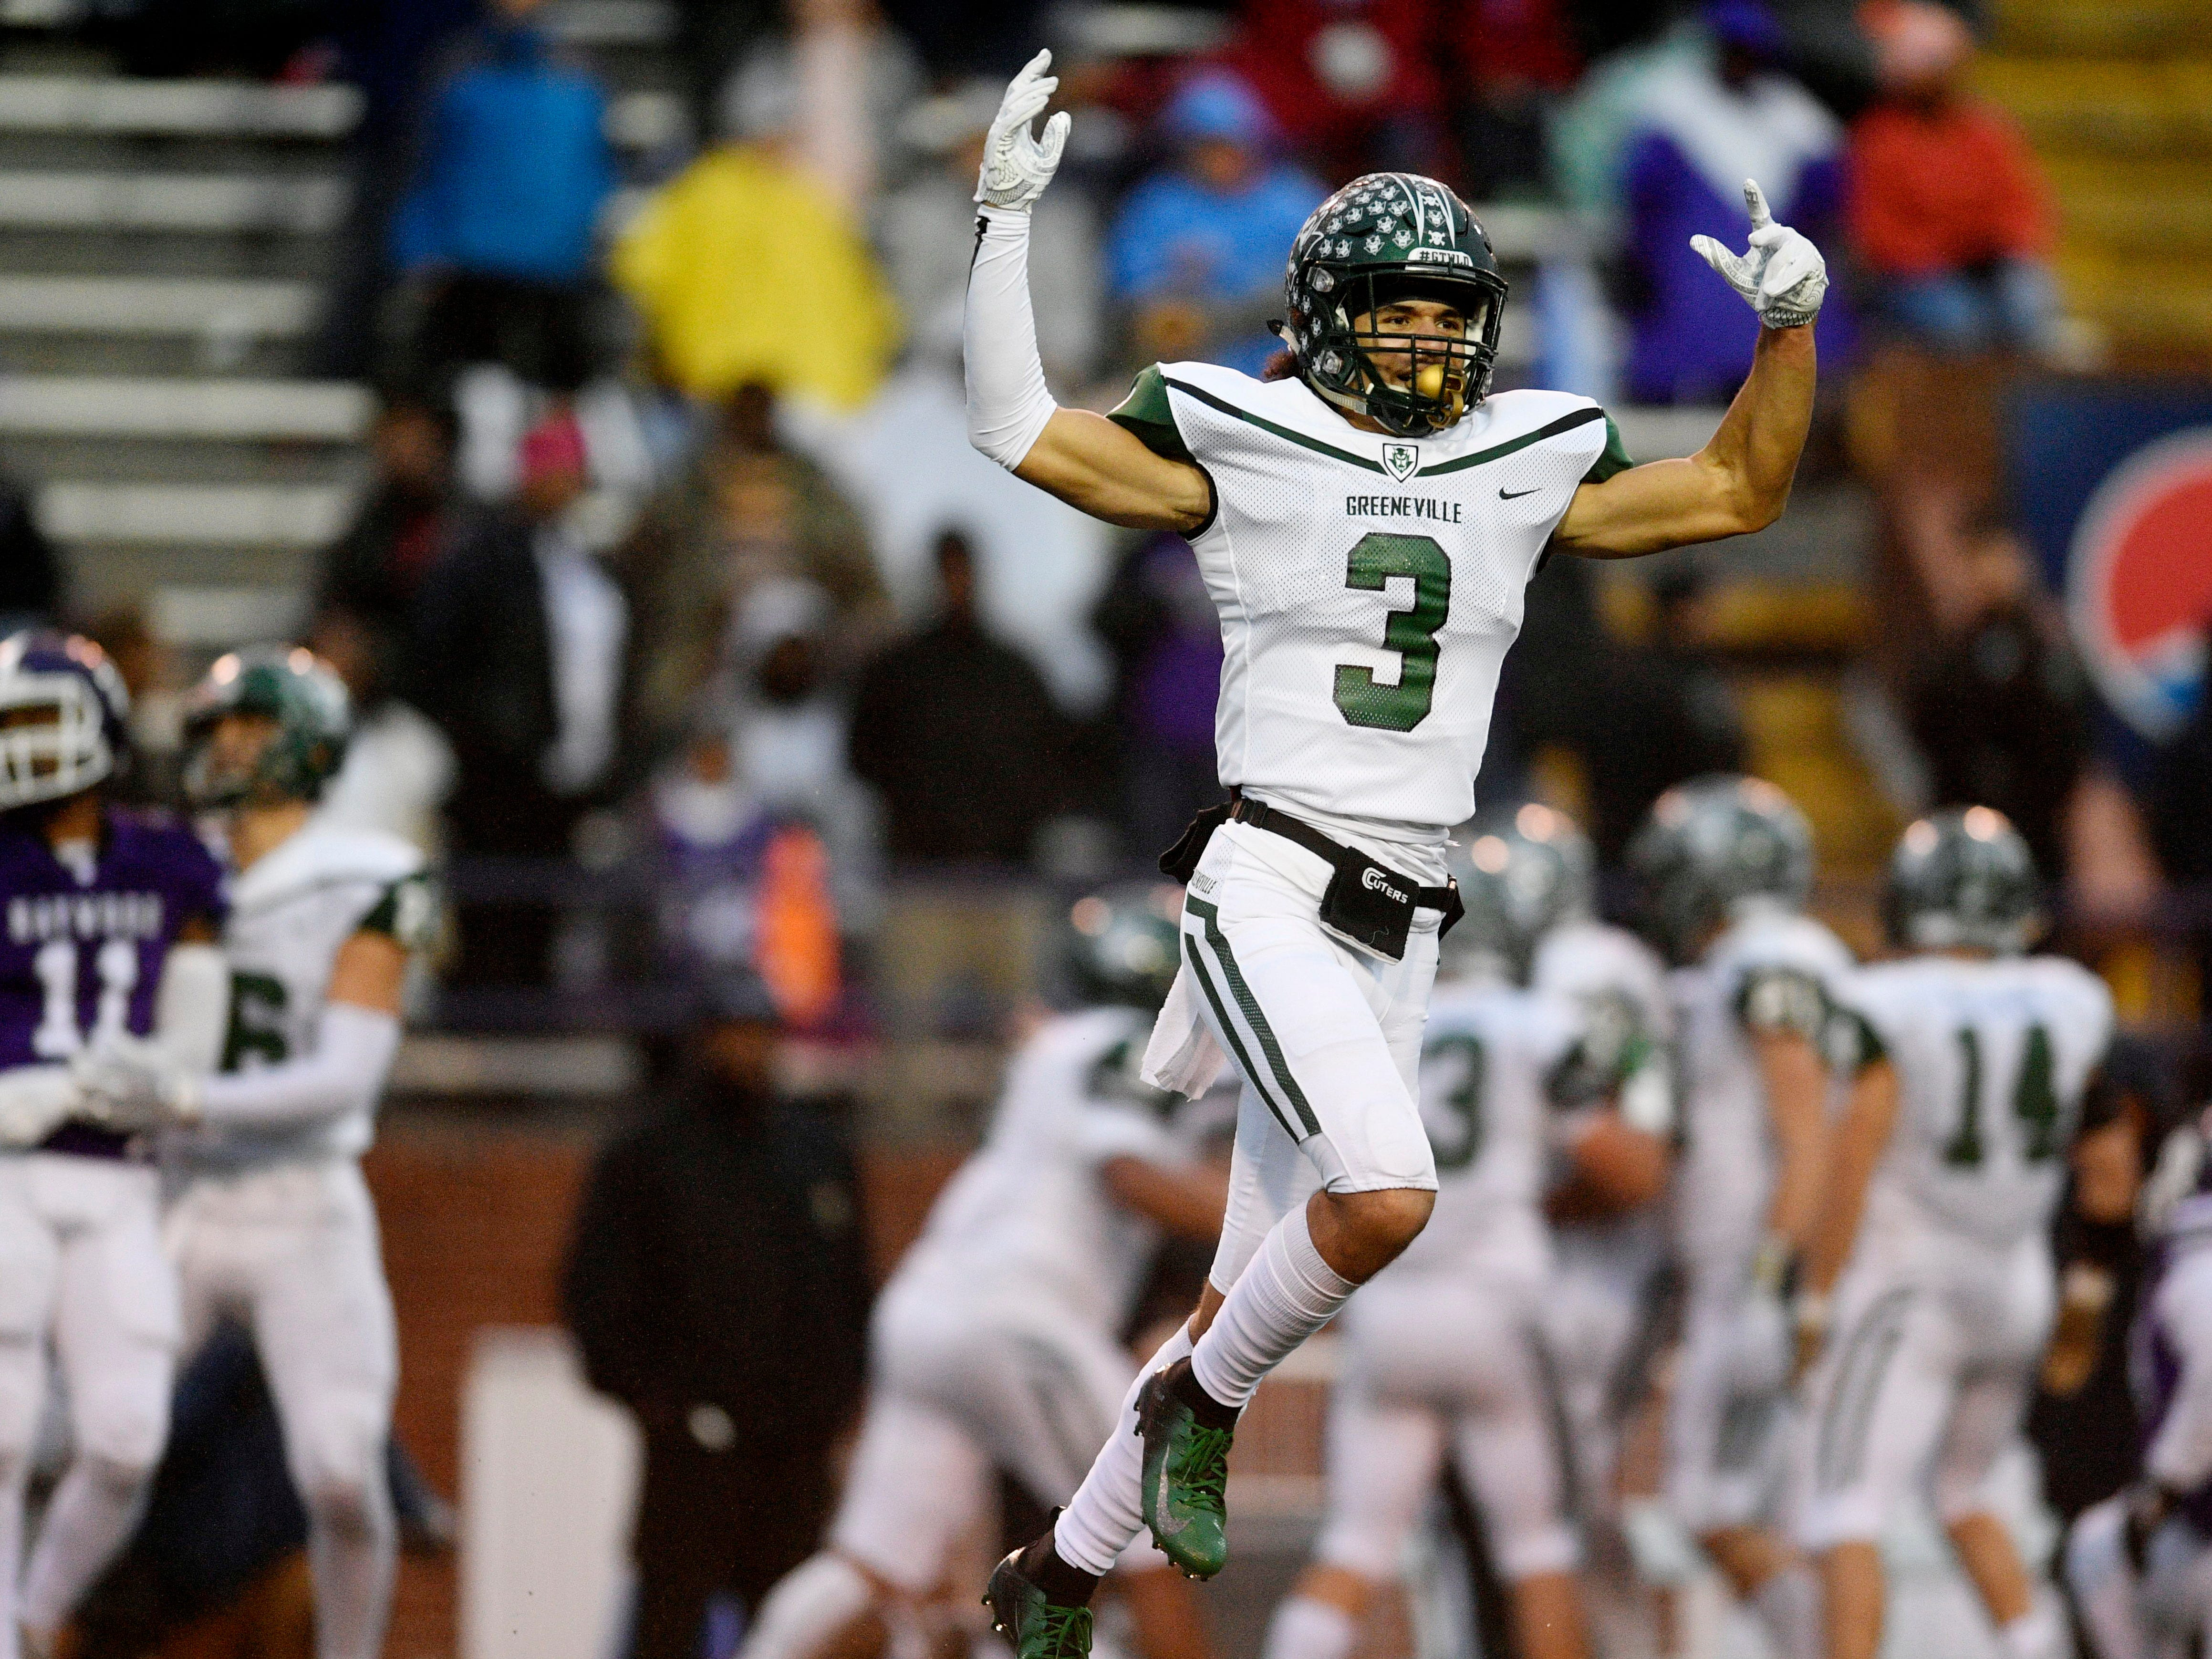 Greeneville's Jordan Gillespie (3) celebrates after a fumble recovery in the first half of the Class 4A BlueCross Bowl state championship at Tennessee Tech's Tucker Stadium in Cookeville, Tenn., on Thursday, Nov. 29, 2018.